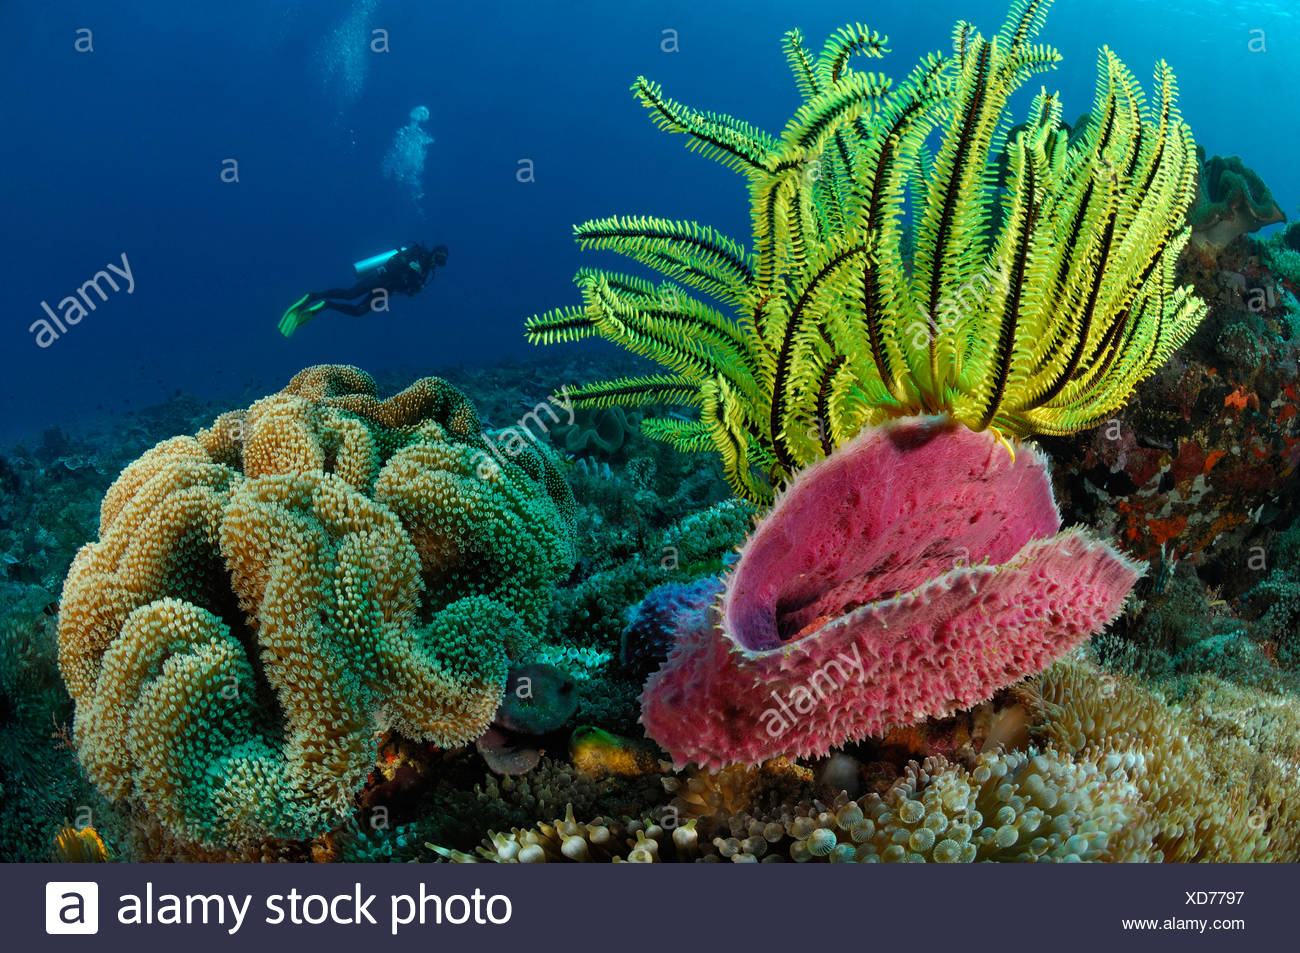 Indopacific Coral Reef, Alor, Indonesia - Stock Image